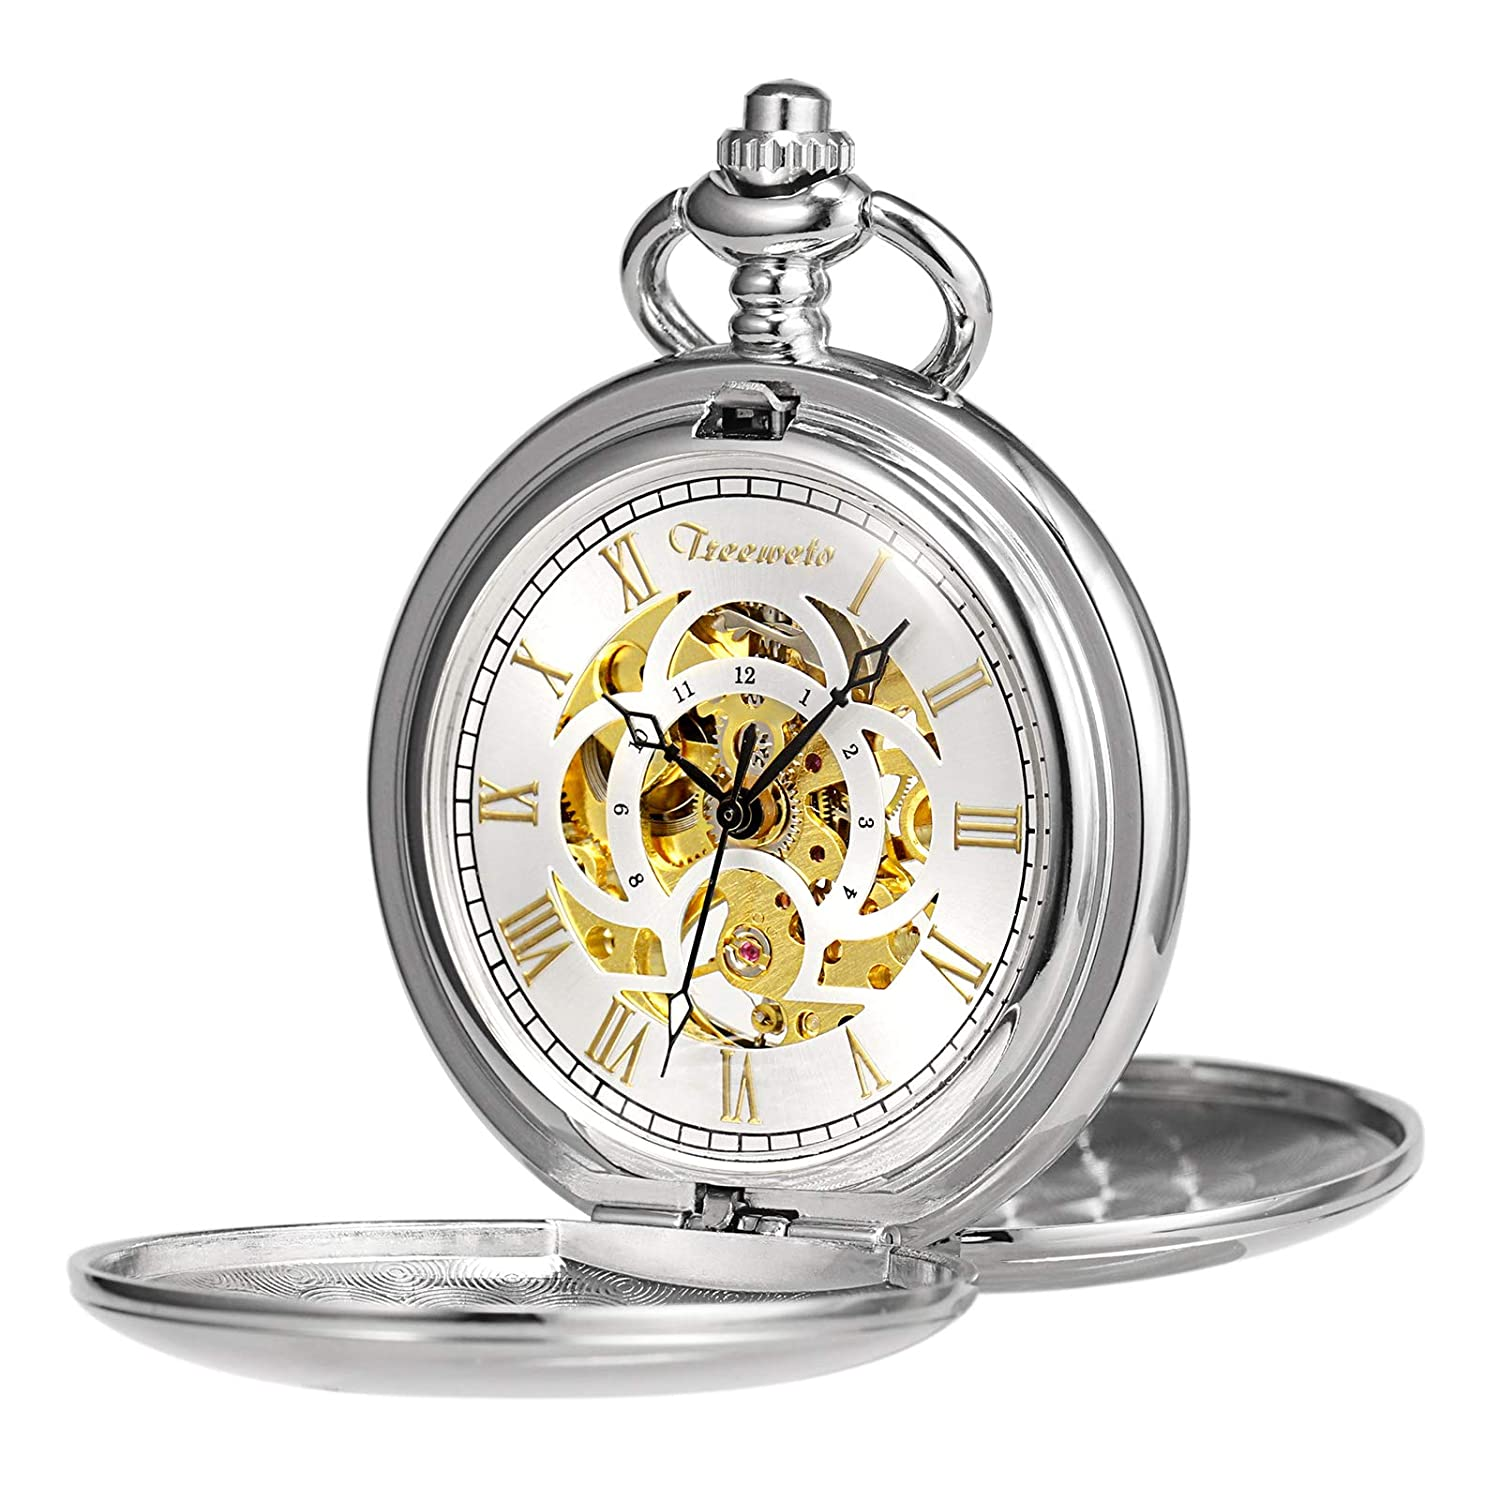 TREEWETO Pocket Watch Classic Smooth Double Case Mechanical Silver Pocket Watches Steampunk Roman Numerals Fob Watch for Men Women with Chain